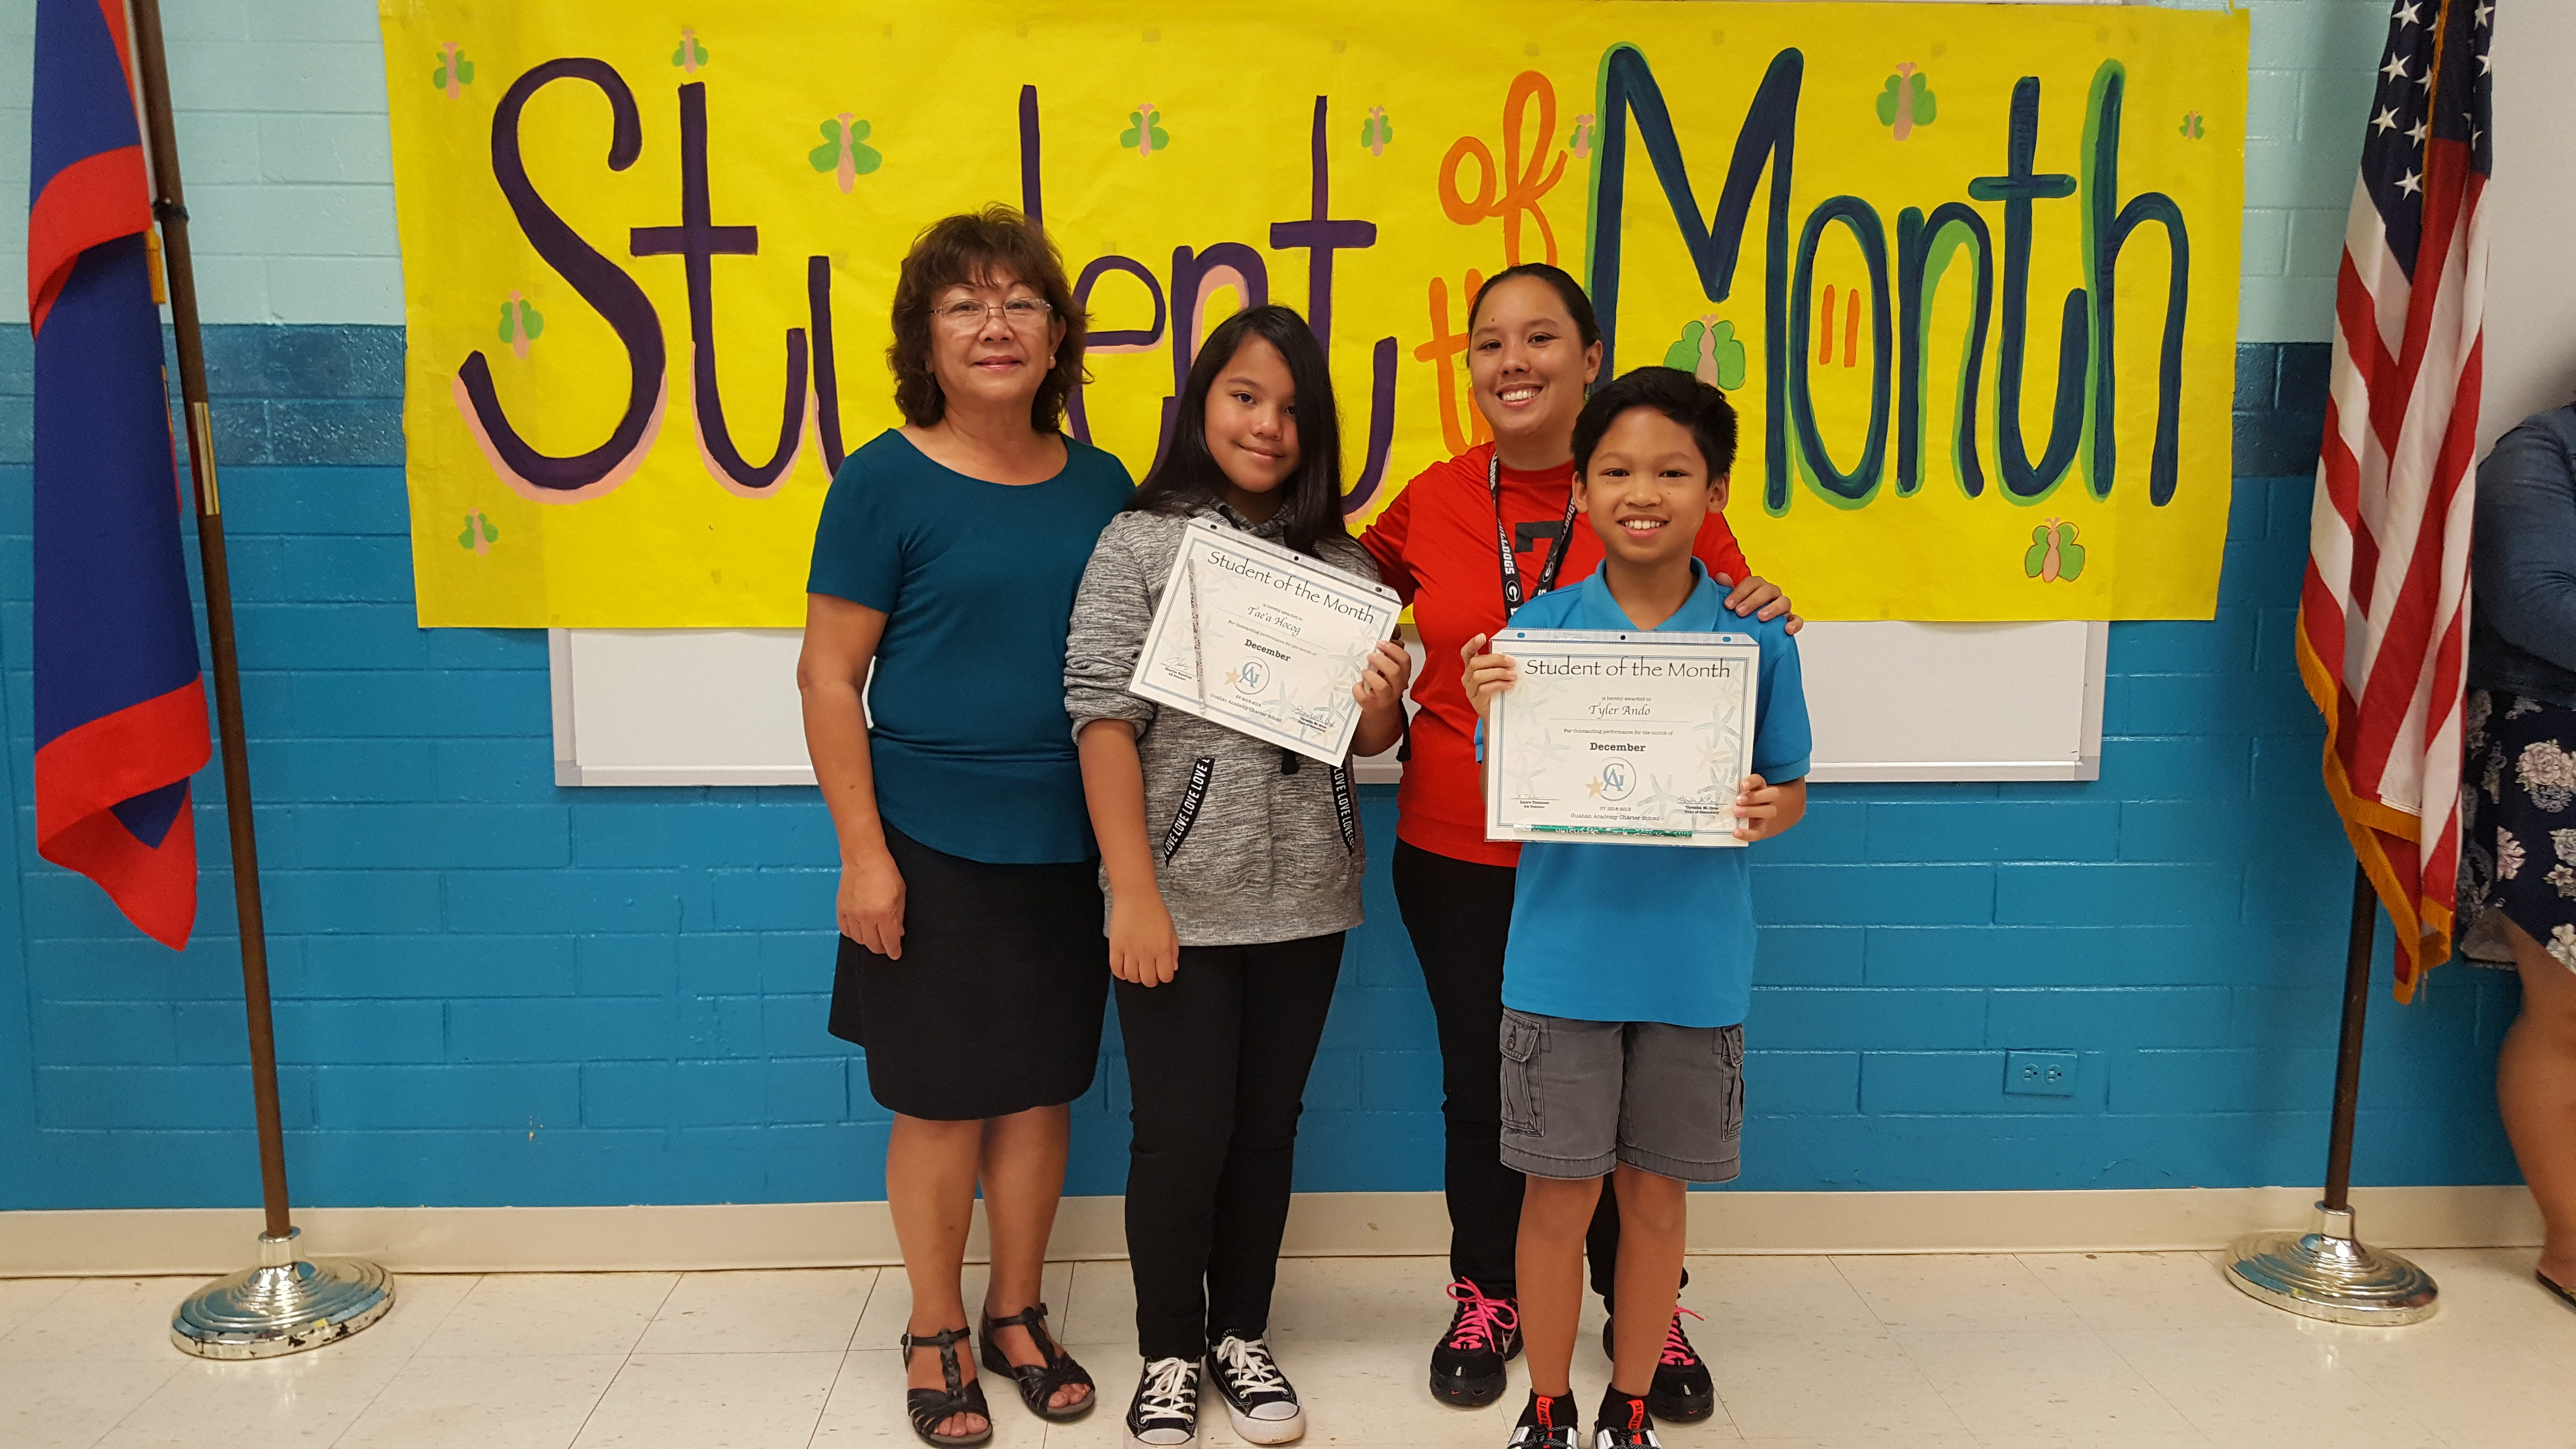 The Guahan Academy Charter School honored its December Student of the Month awardees on Jan. 17. Pictured in the front row: Tyler Ando. Back row: Teresita Cruz, Dean of High School Guahan Academy Charter School, Tae'a Hocog and Laura Taisacan.